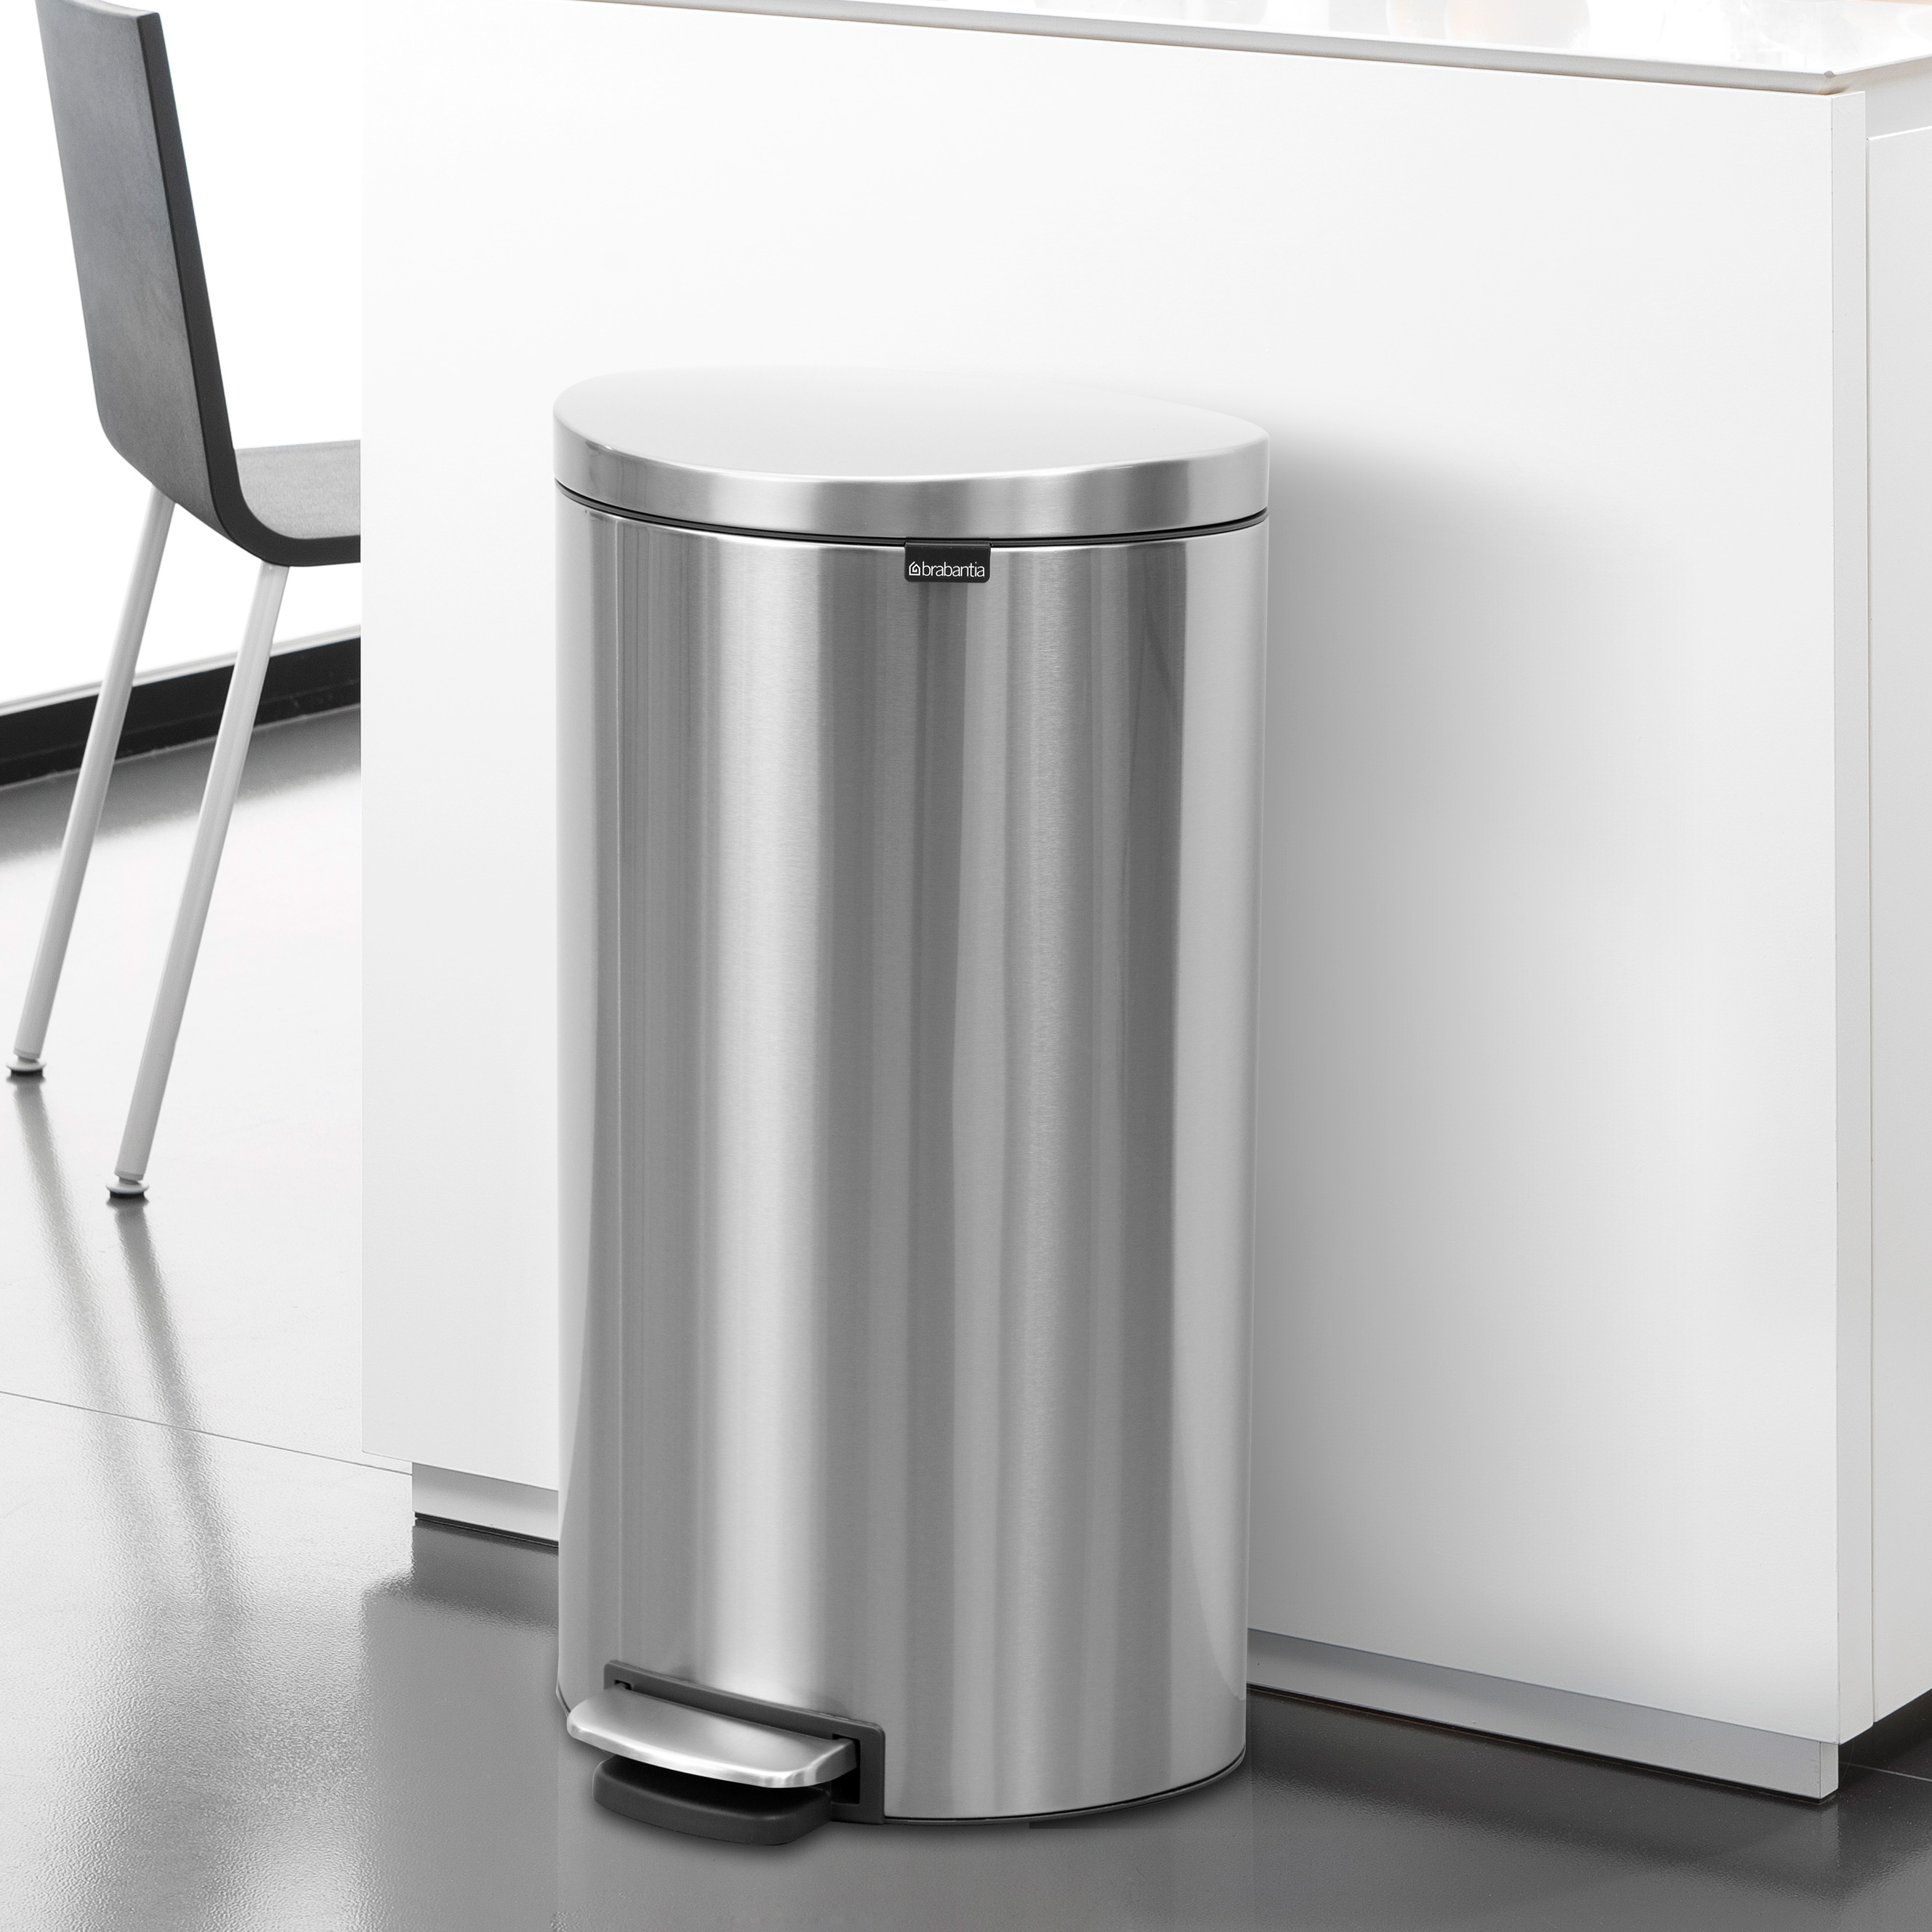 Metal Indoor Trash Can Brabantia Stainless Steel 8 Gal 30l Flatback Semi Round Trash Can